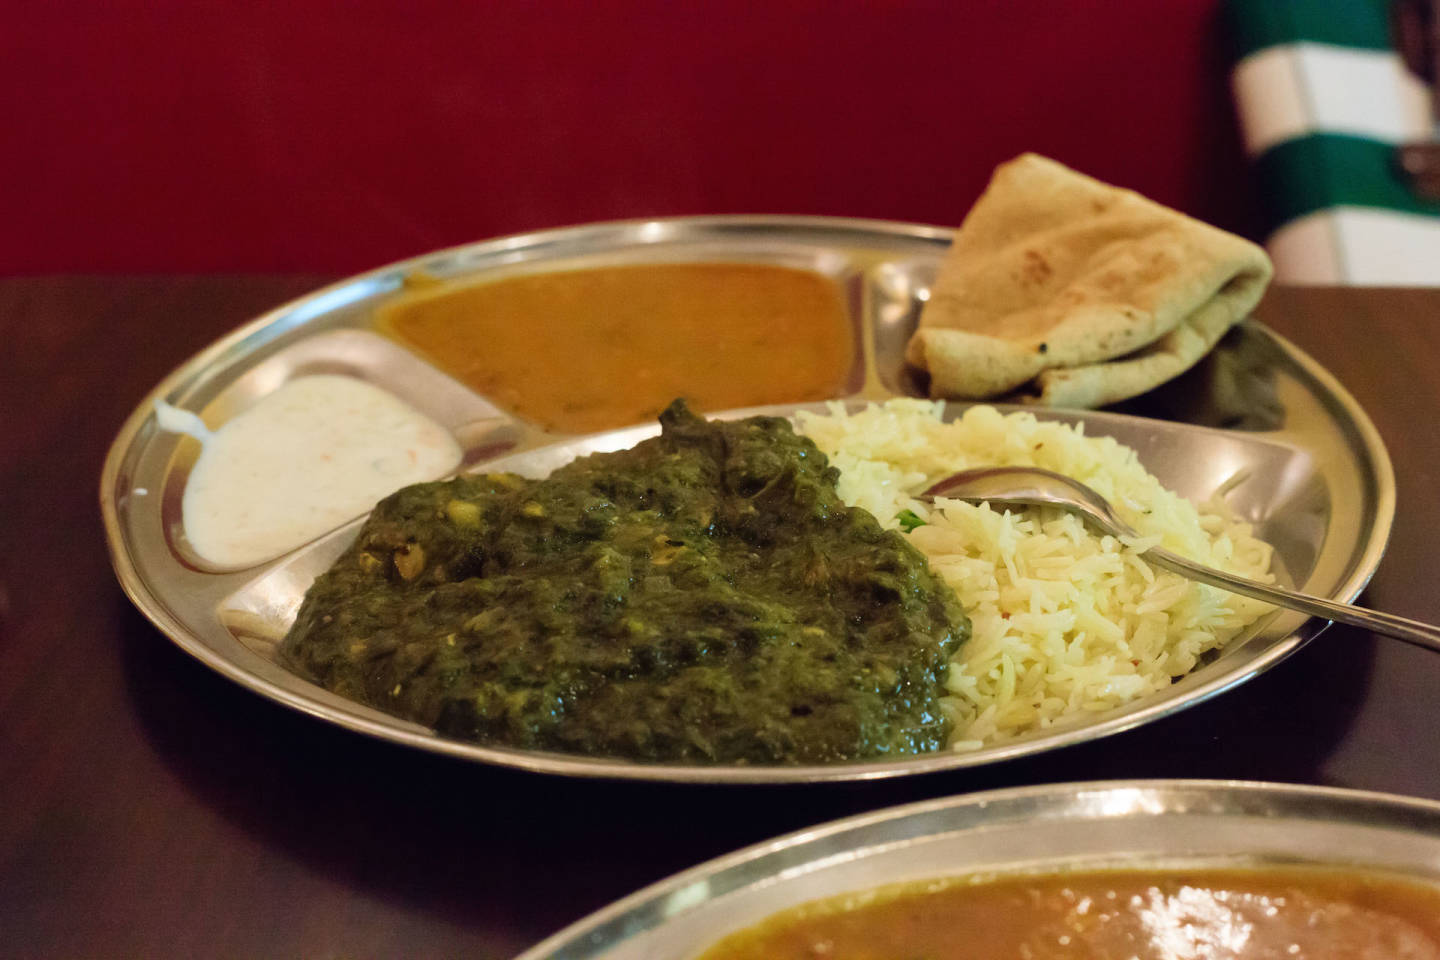 Sartaj India Cafe: The Home-Style Indian Spot Where Locals Eat